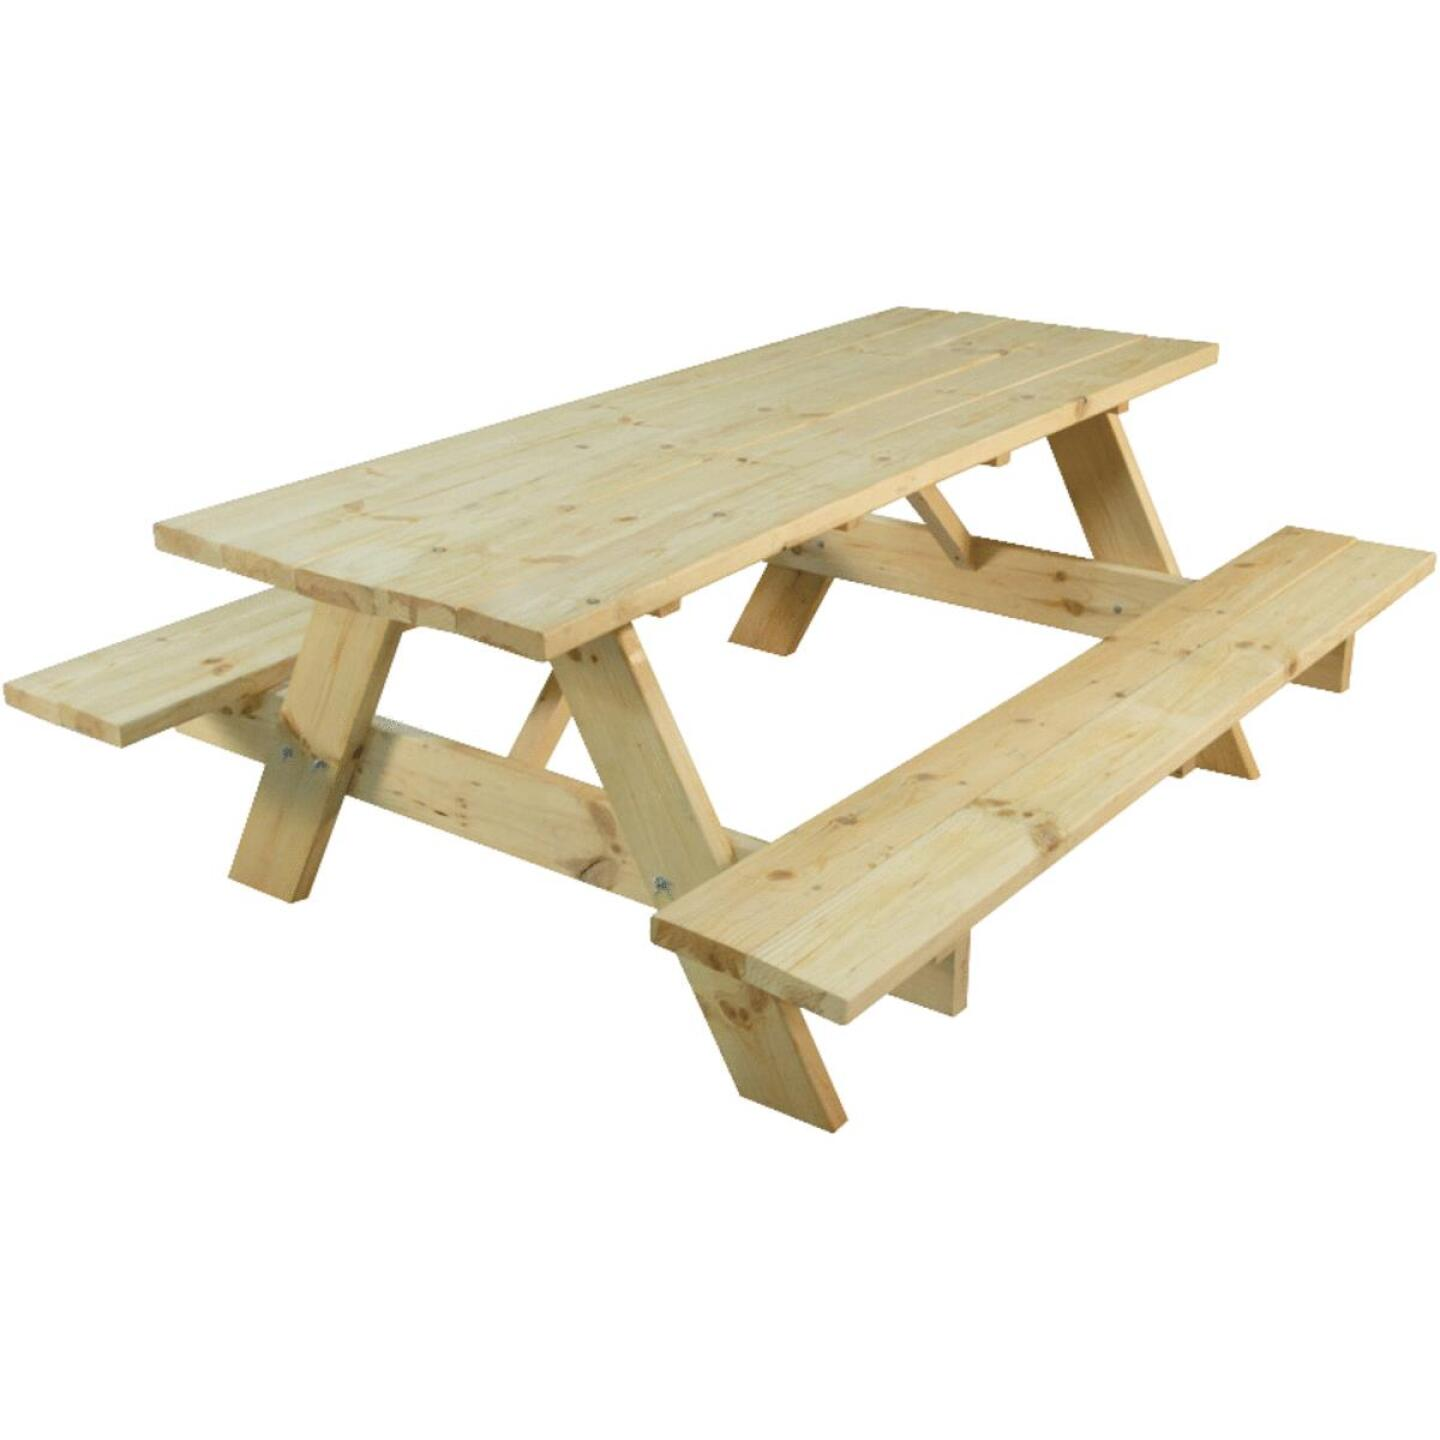 Outdoor Essentials 6 Ft. Natural Untreated Picnic Table with Benches Image 1